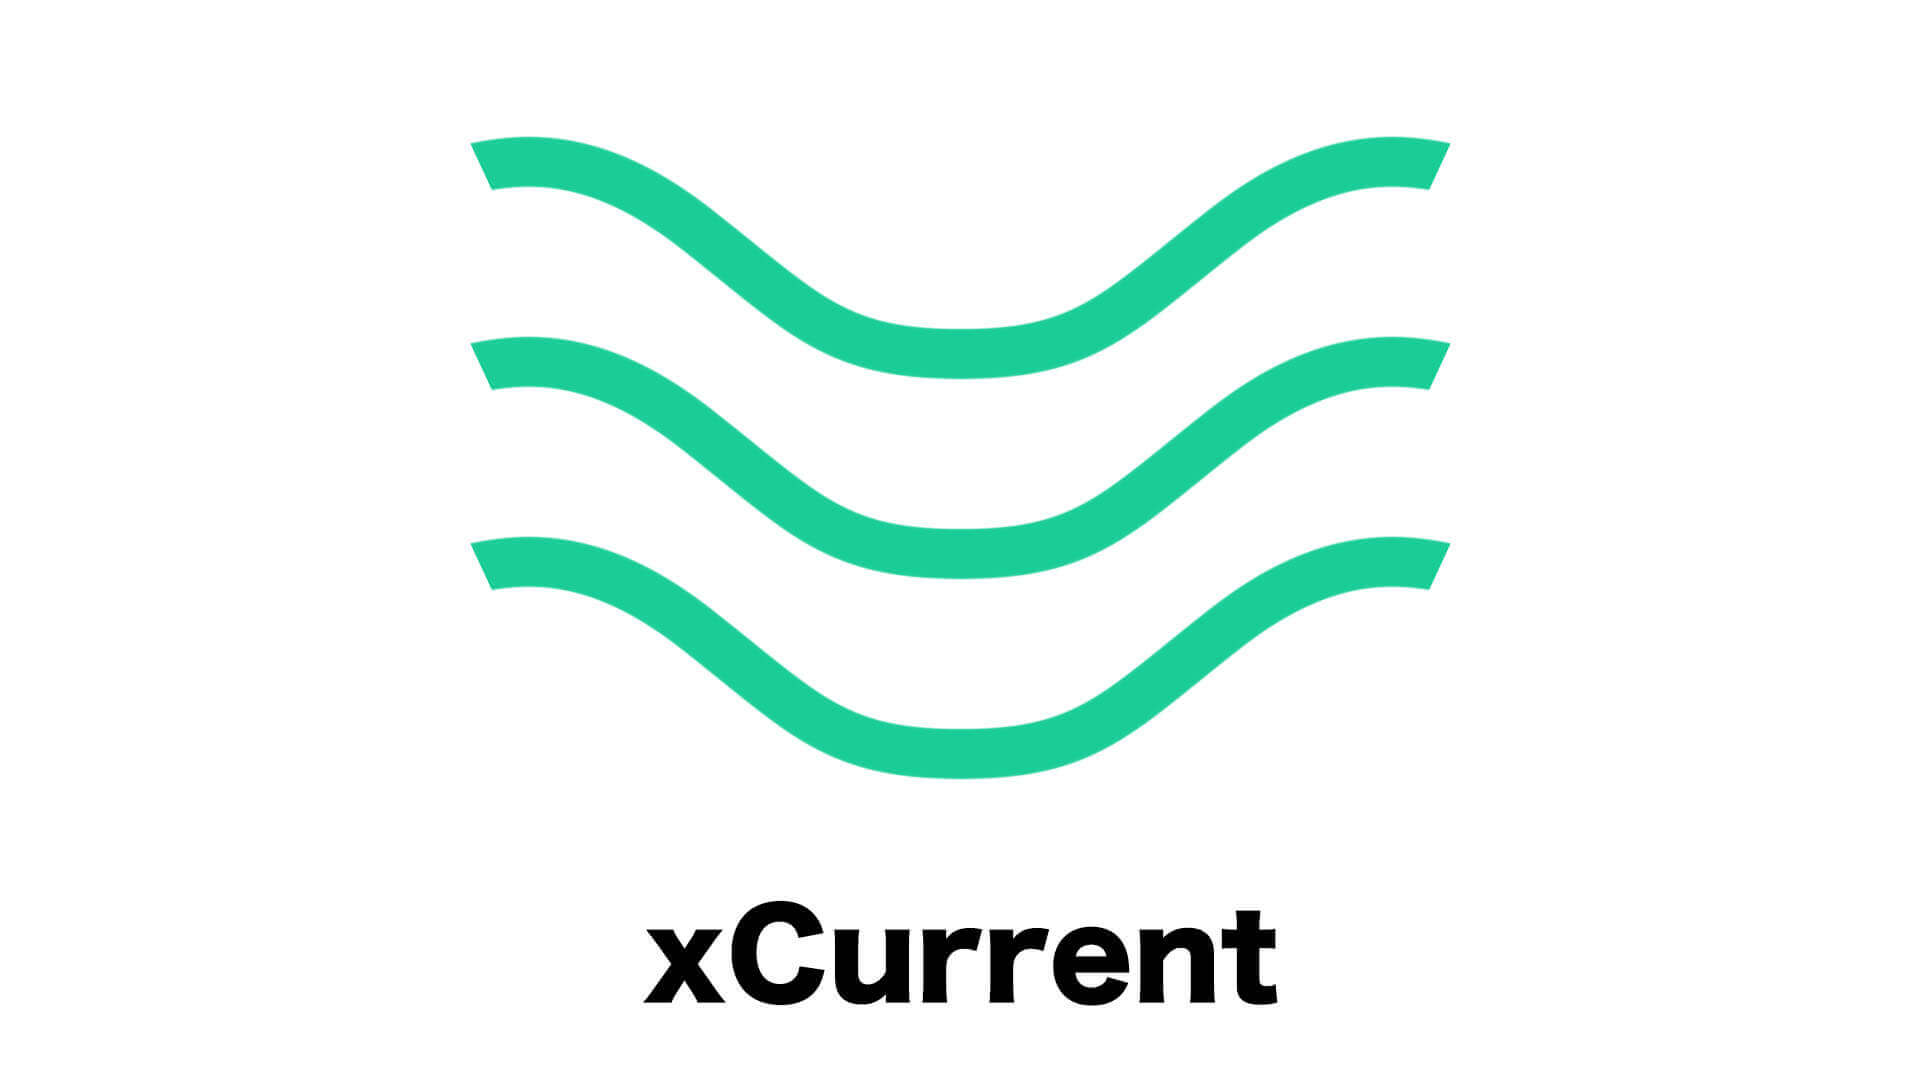 xcurrent 4.0 xrp ripple